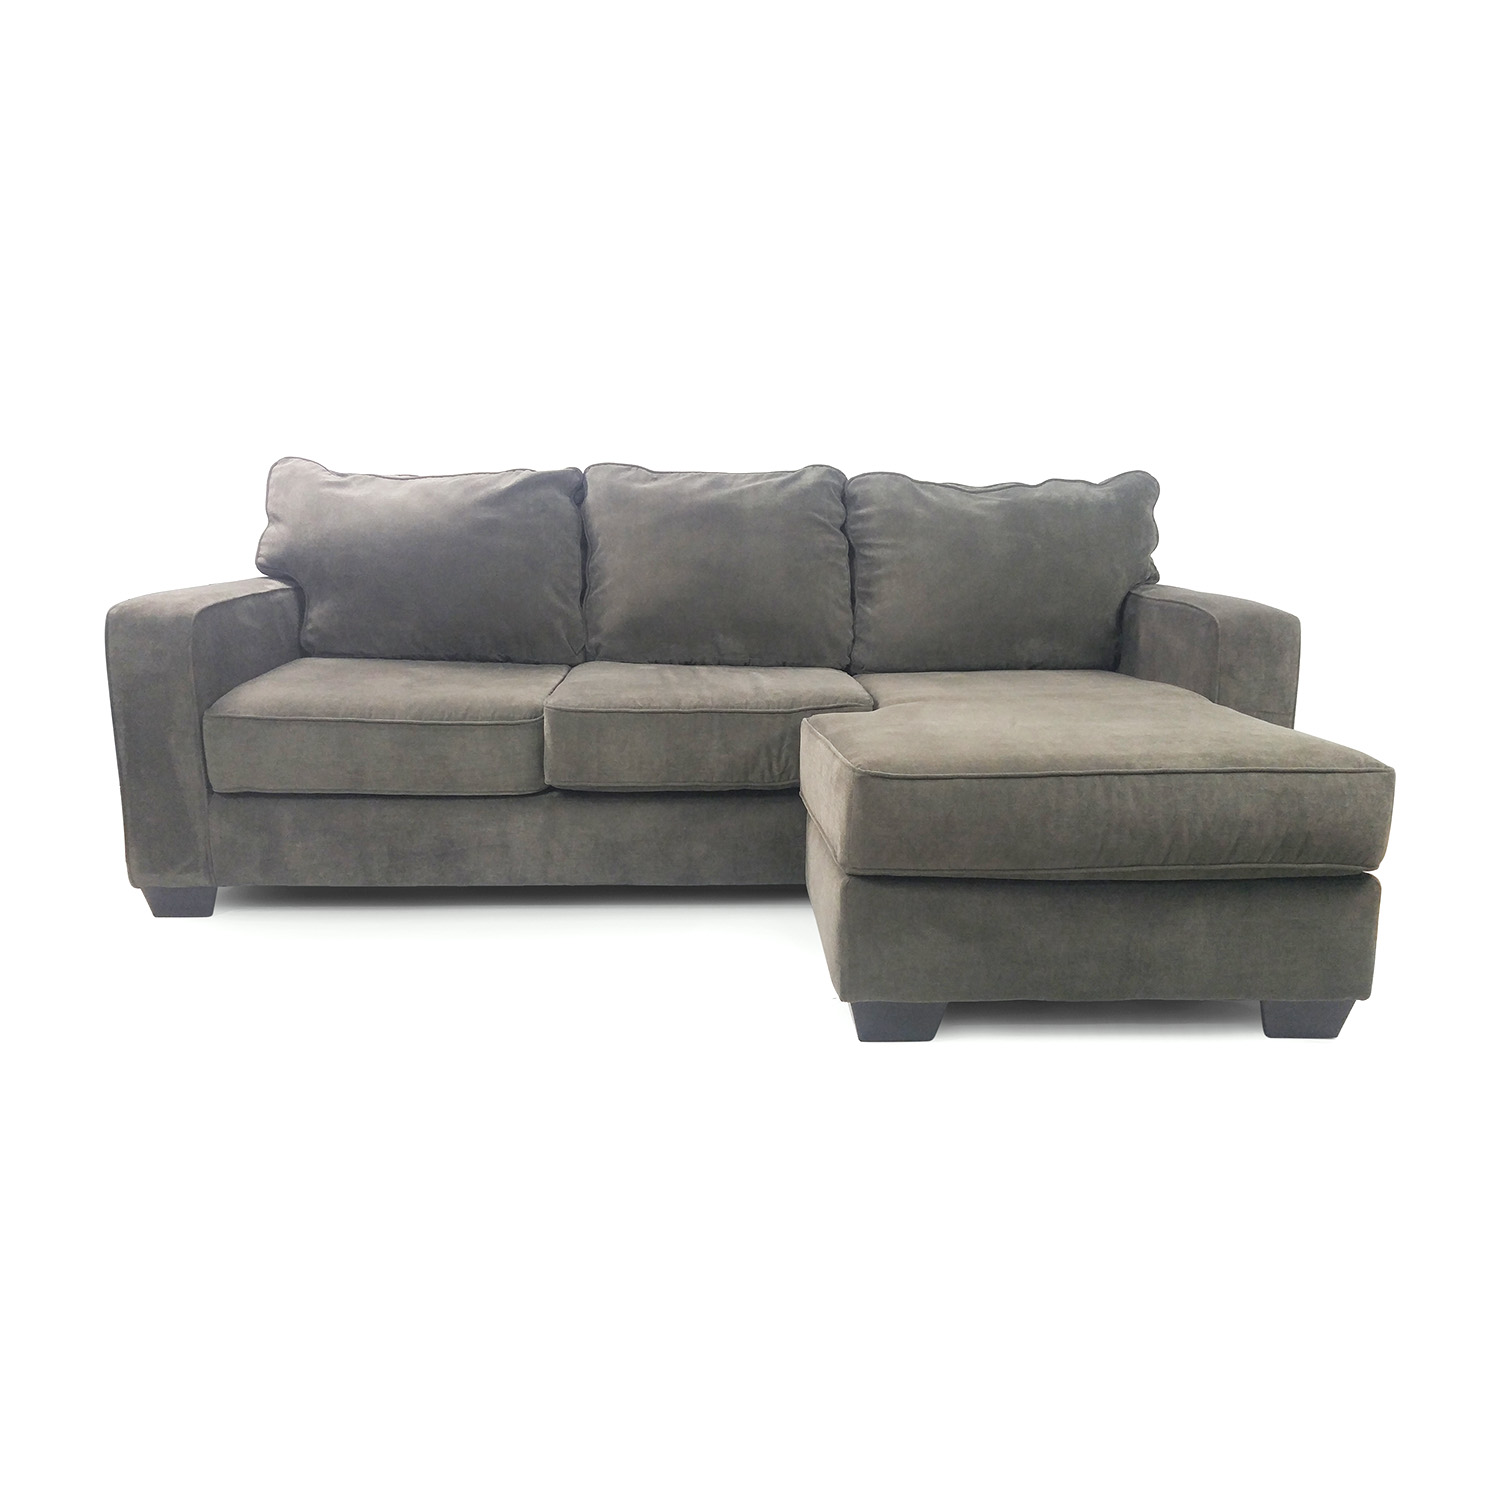 Bo concept chaise coupon code for Ashley furniture chaise lounge couch